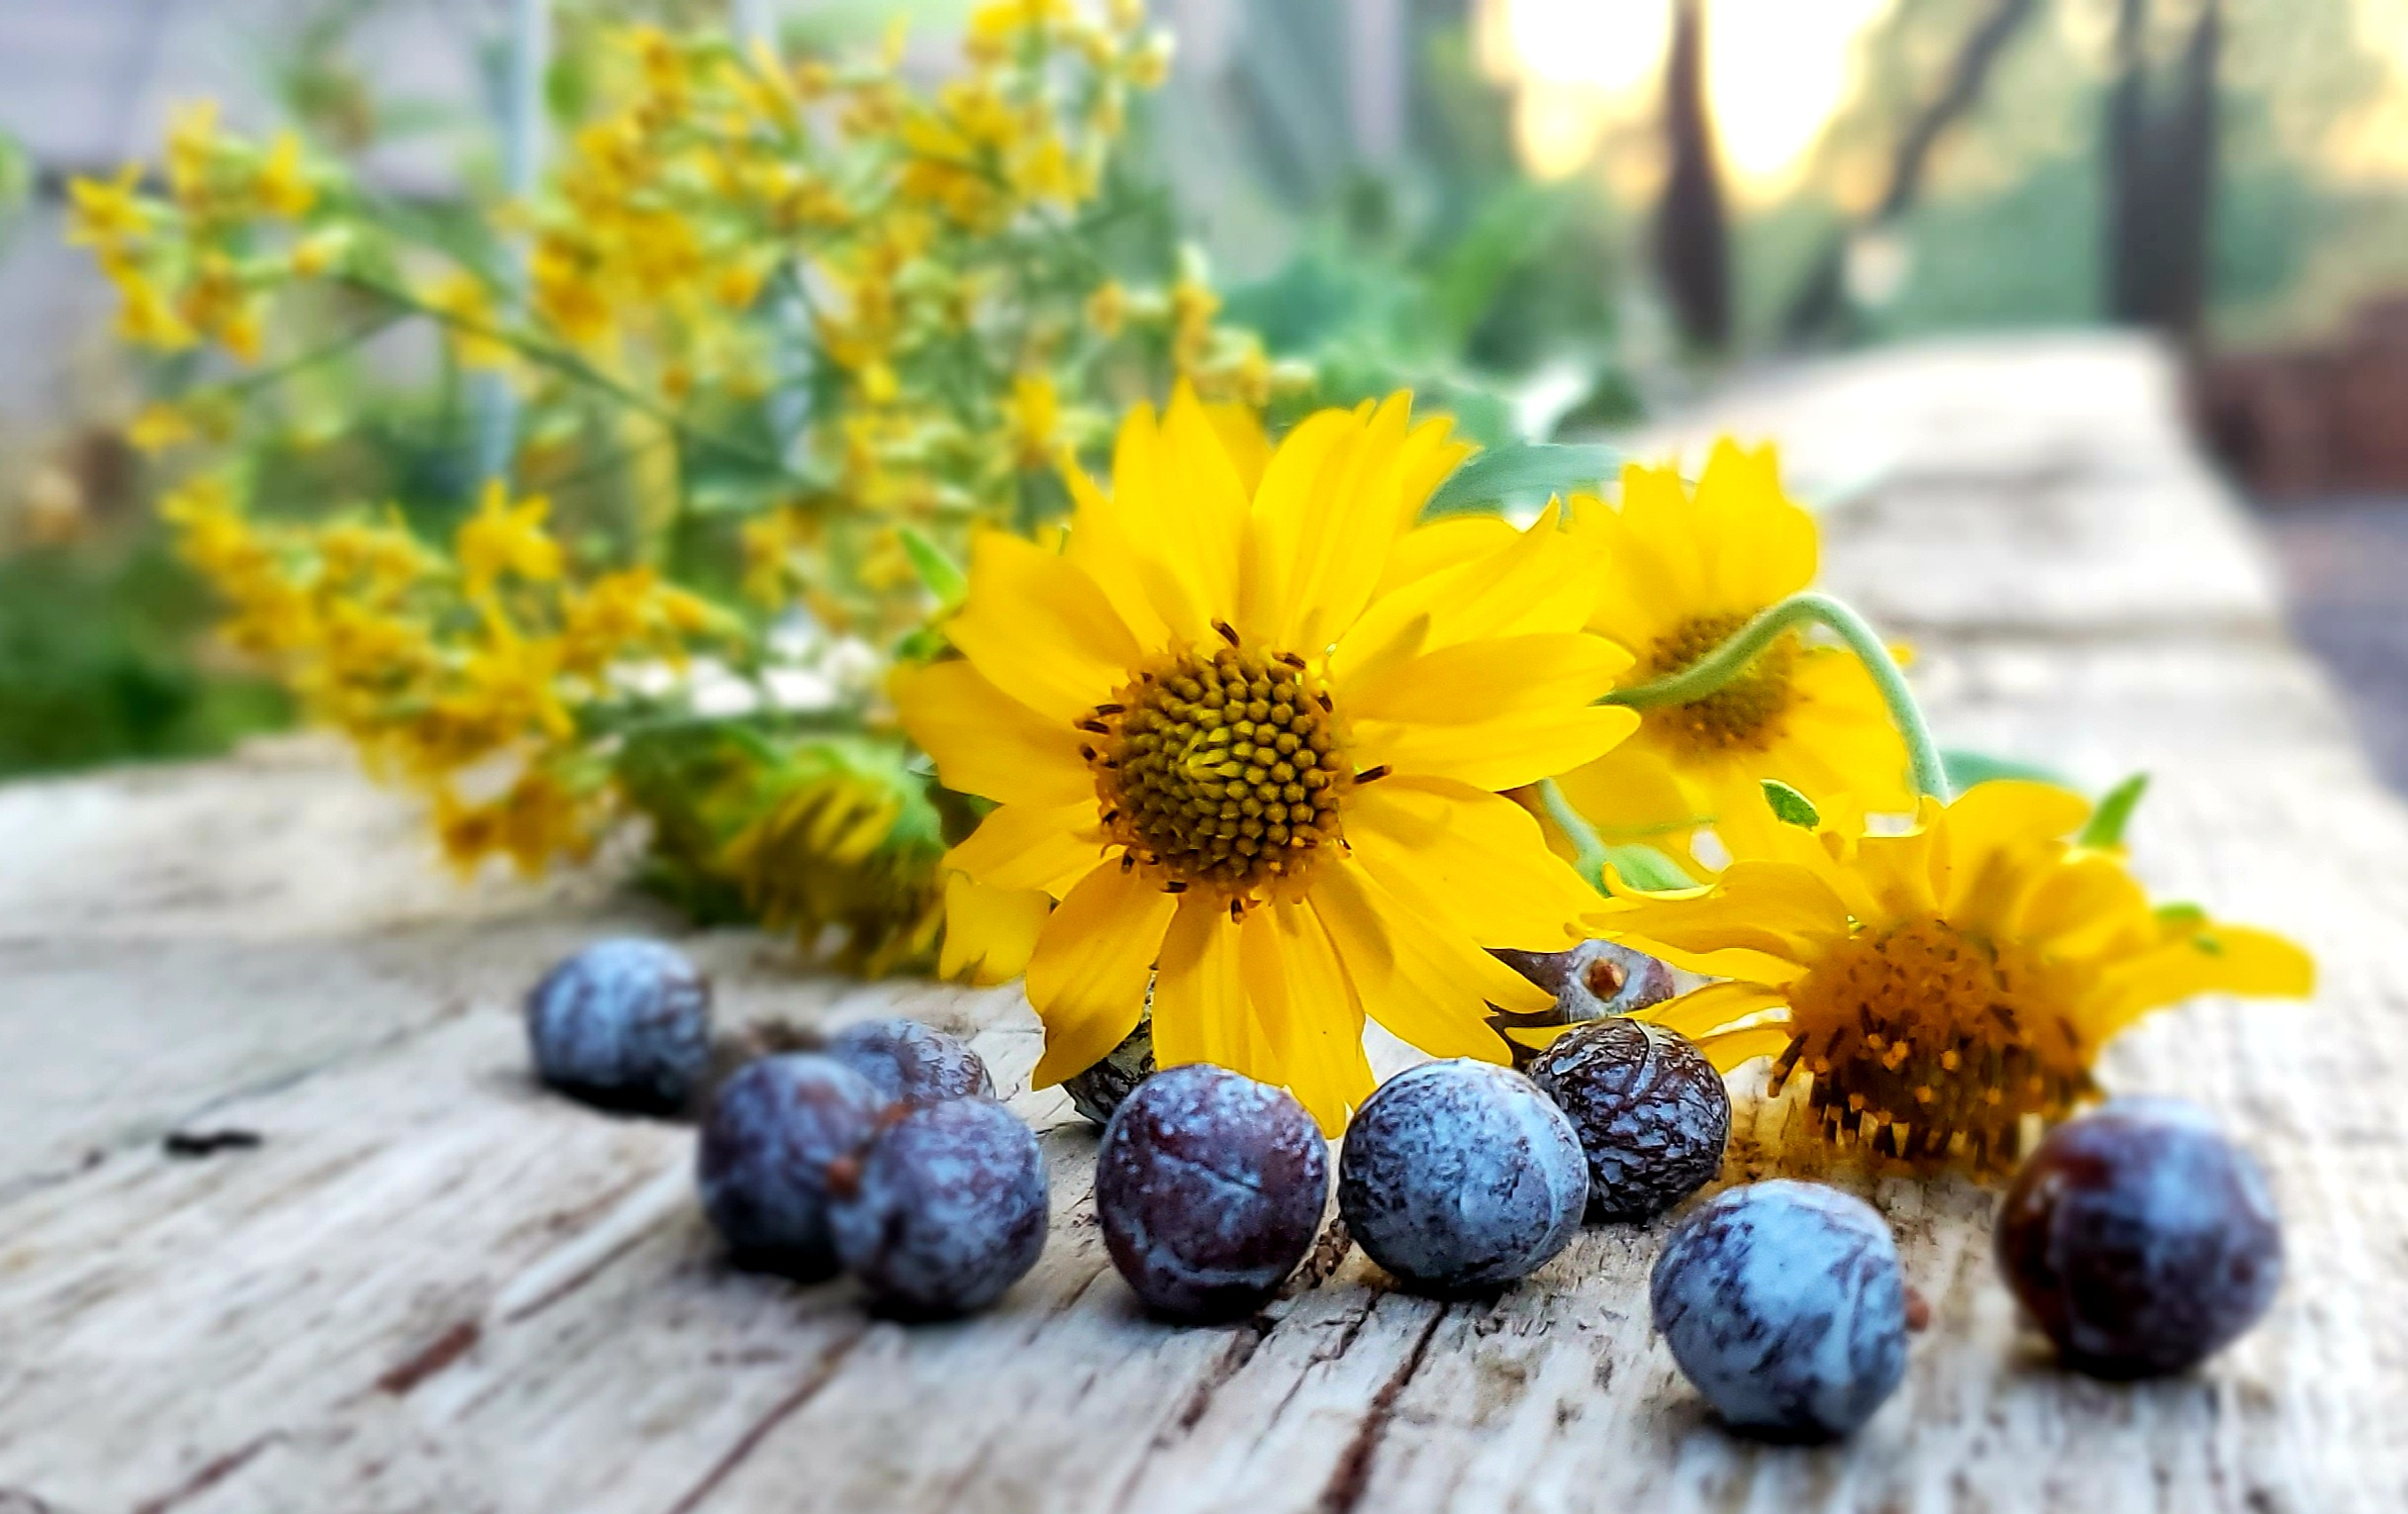 Autumn Scents from the Garden. Photo Copyright Sharon Falsetto. All Rights Reserved.